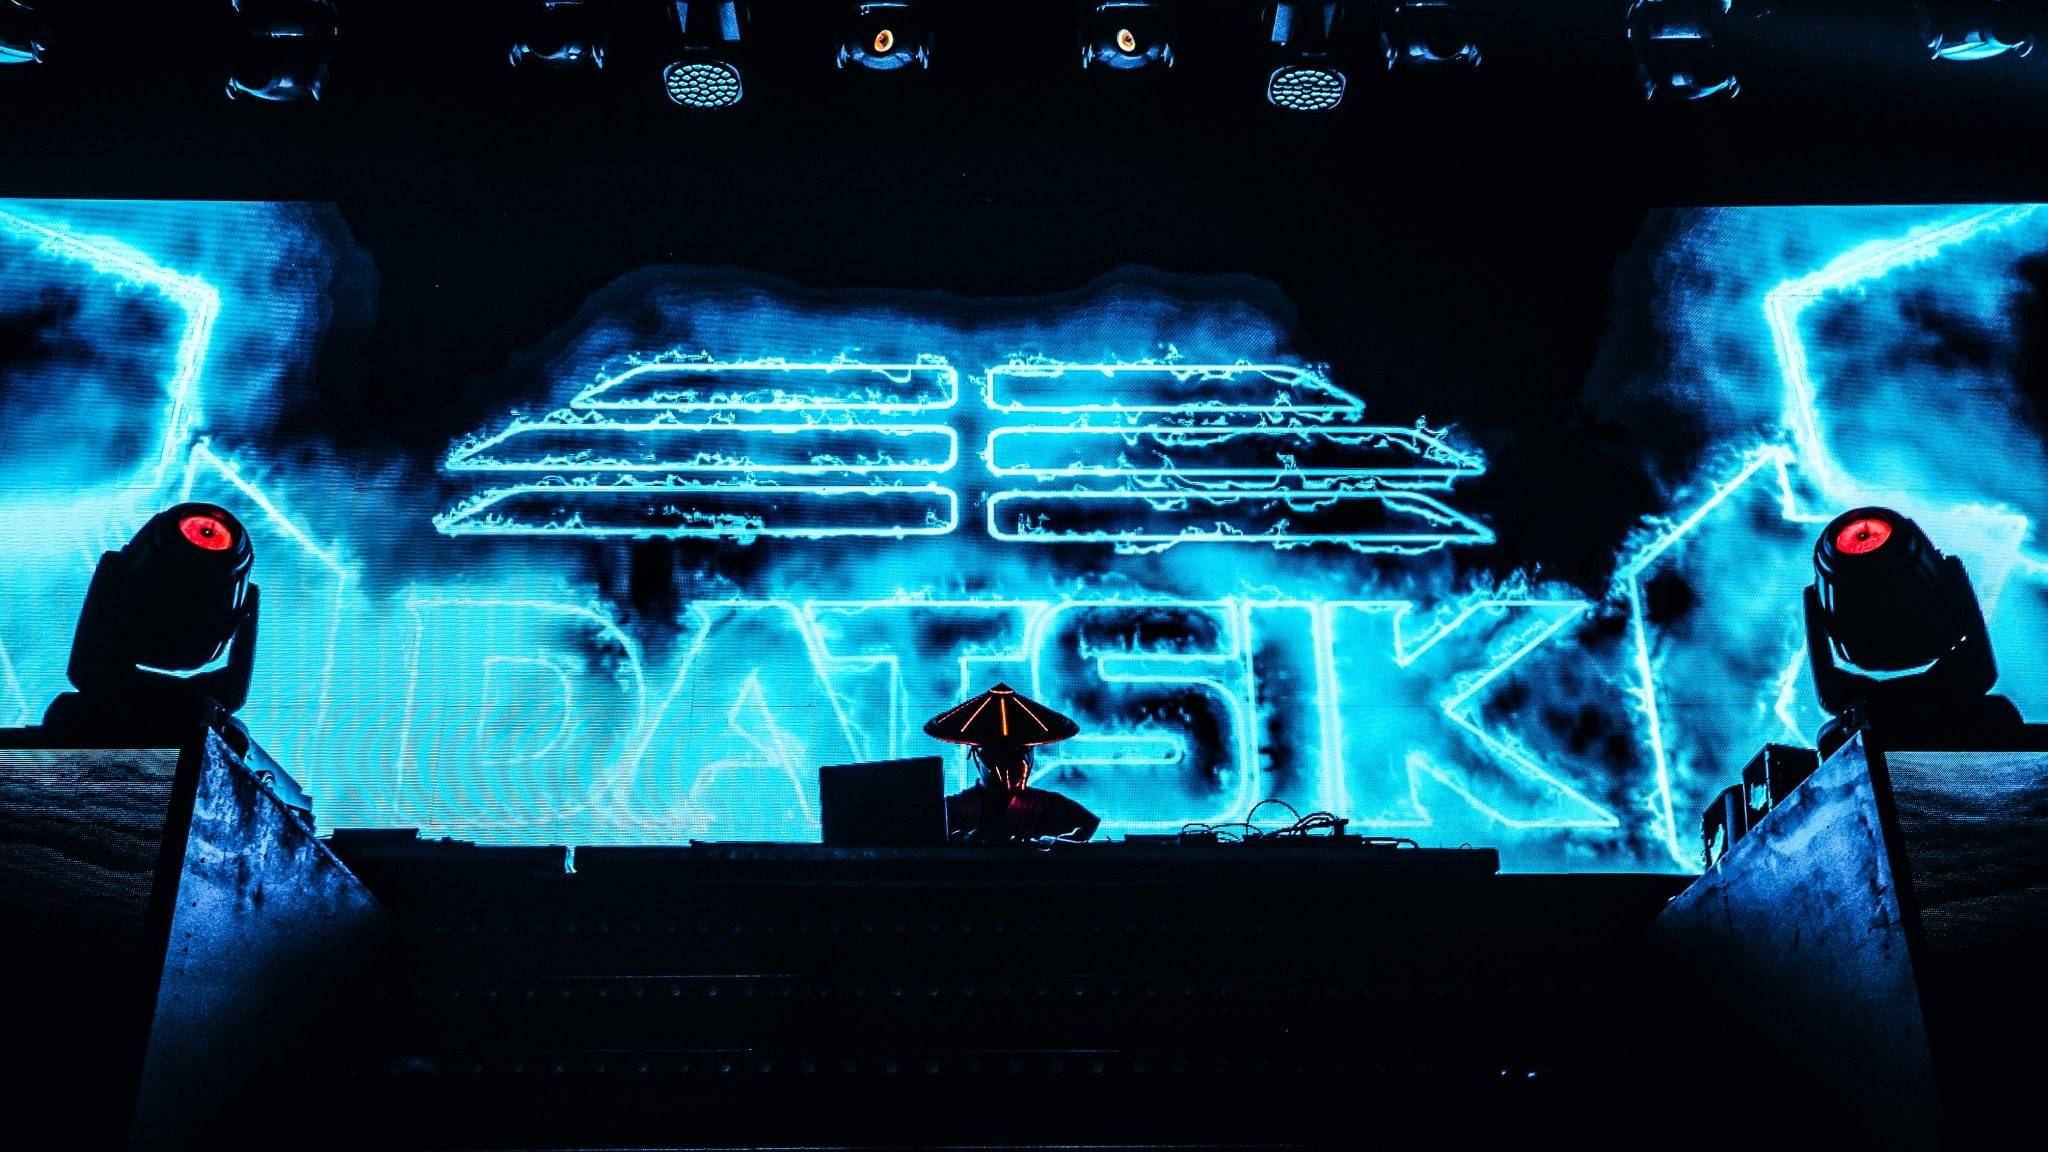 2048x1152 Datsik Announces 'Ninja Nation' 2018 Tour Ft. Space Jesus, Riot Ten And More